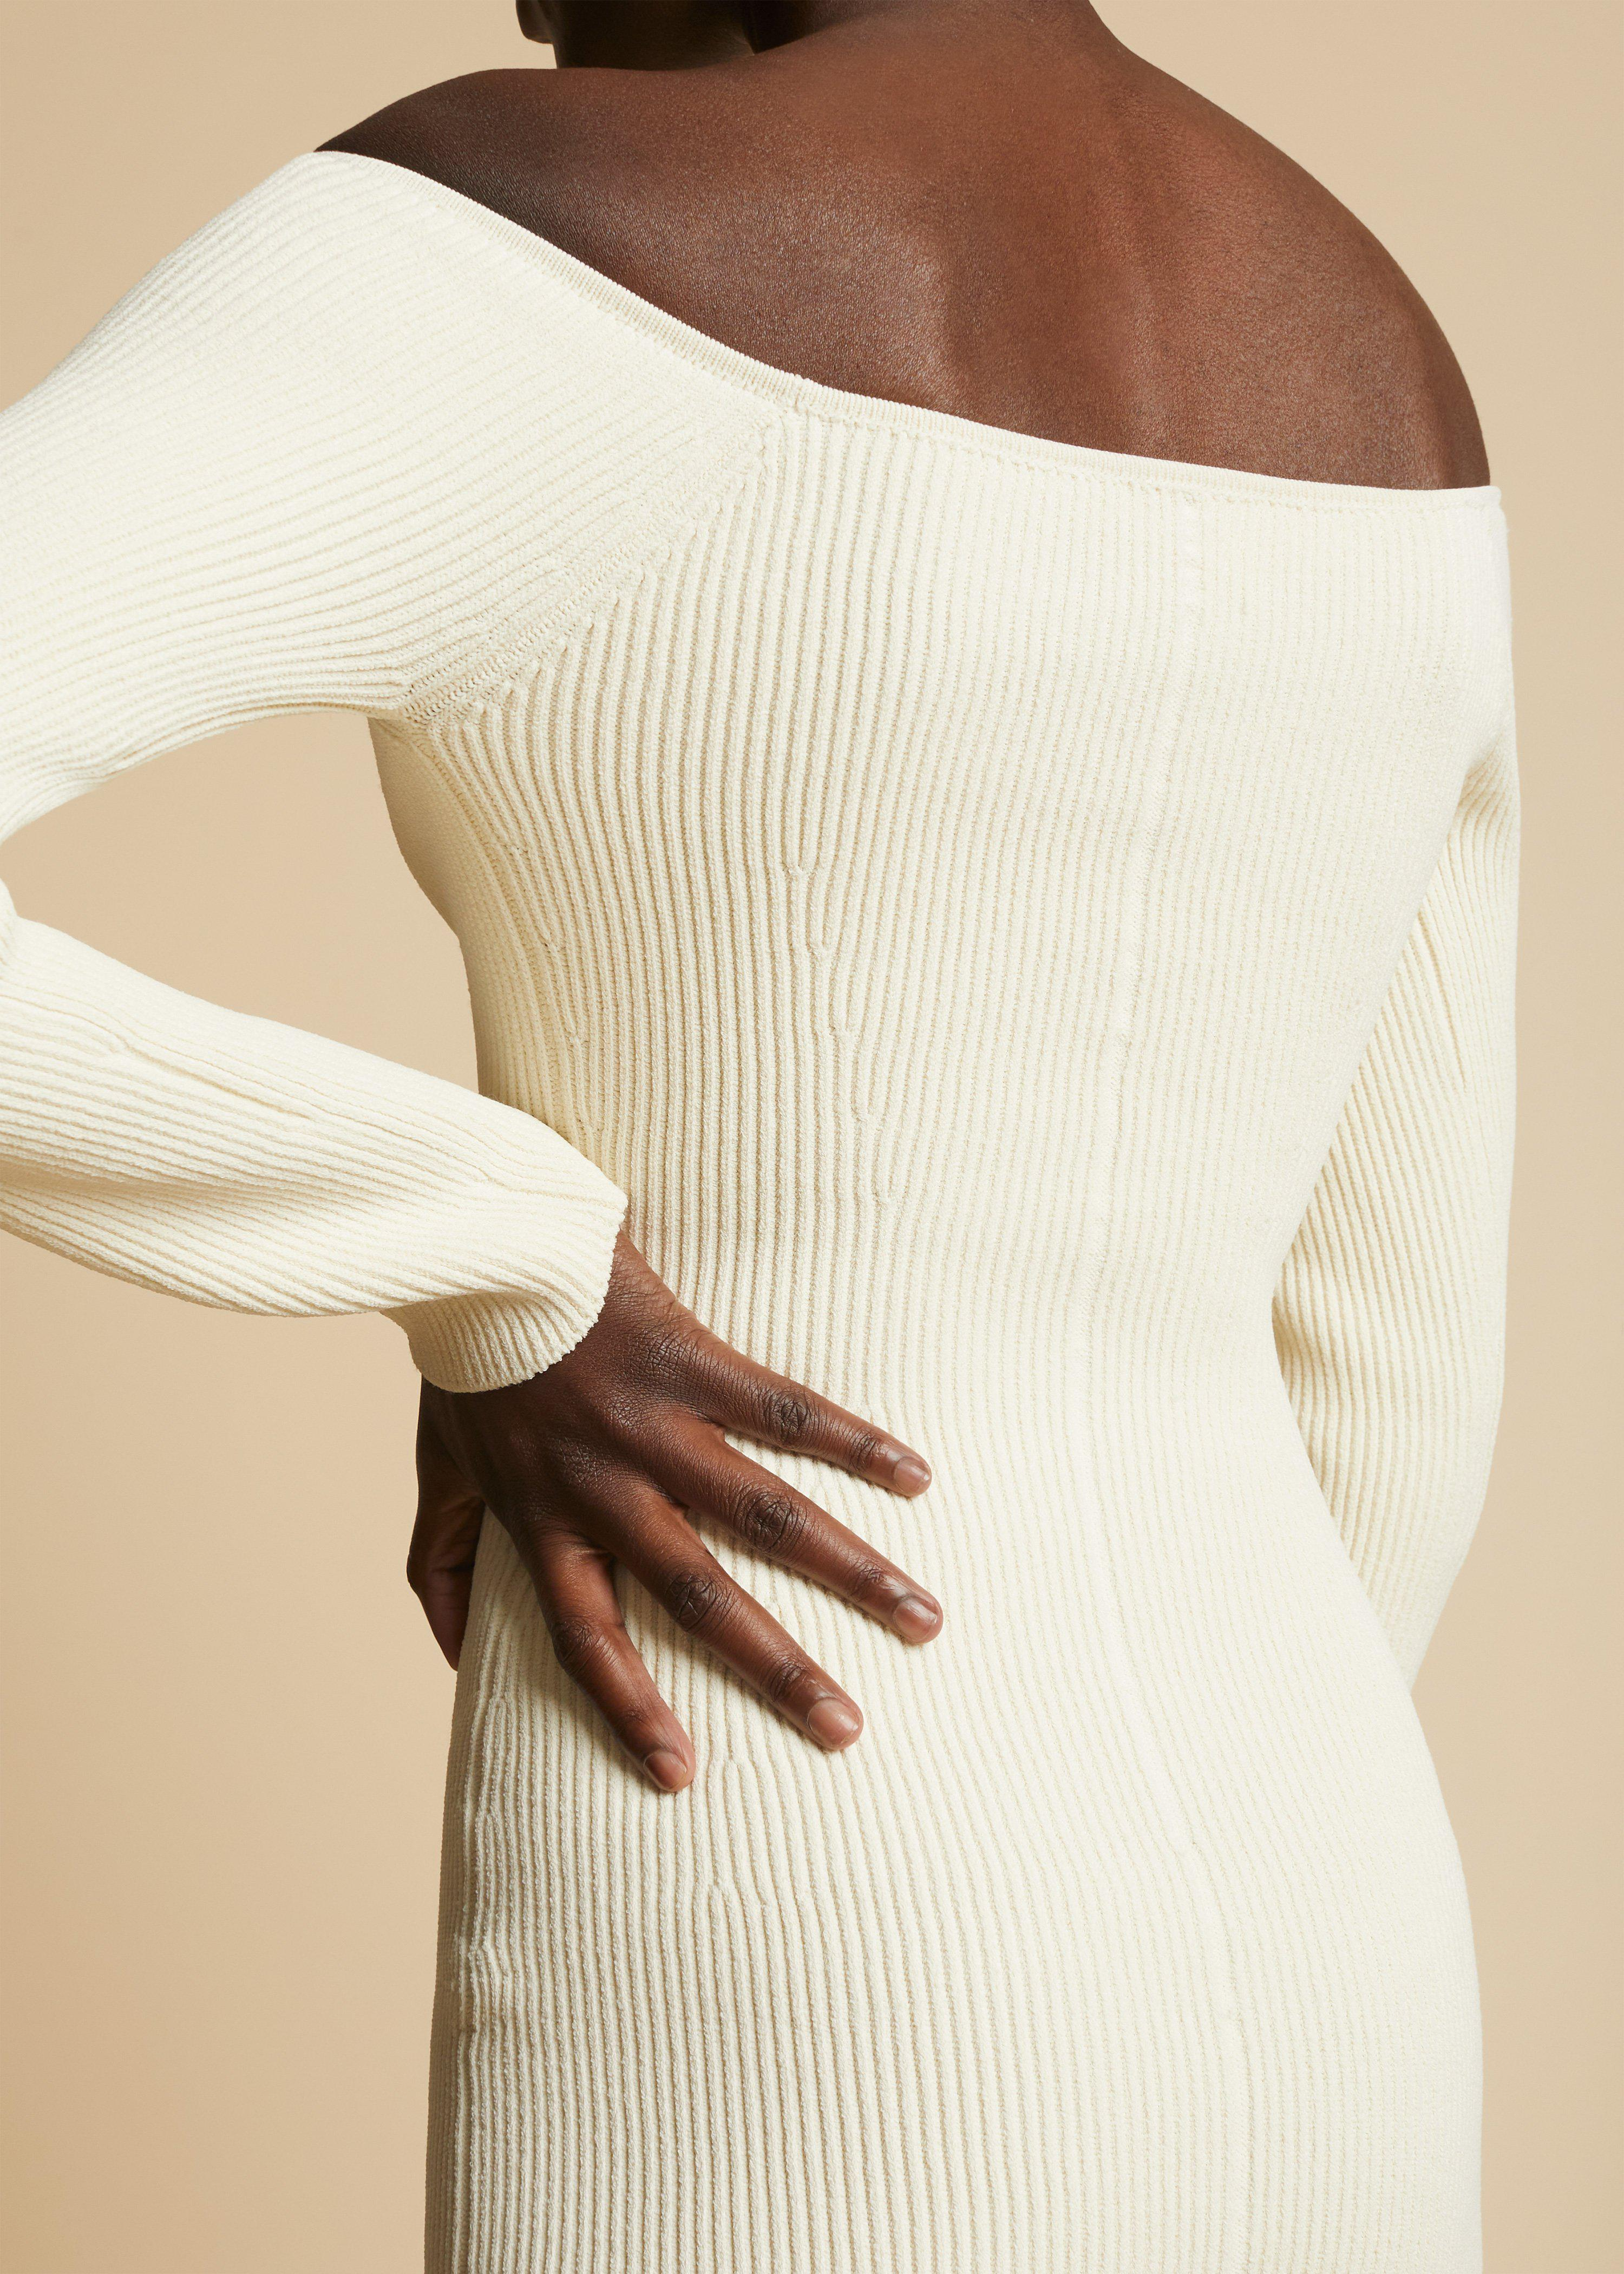 The Pia Dress in Ivory 3